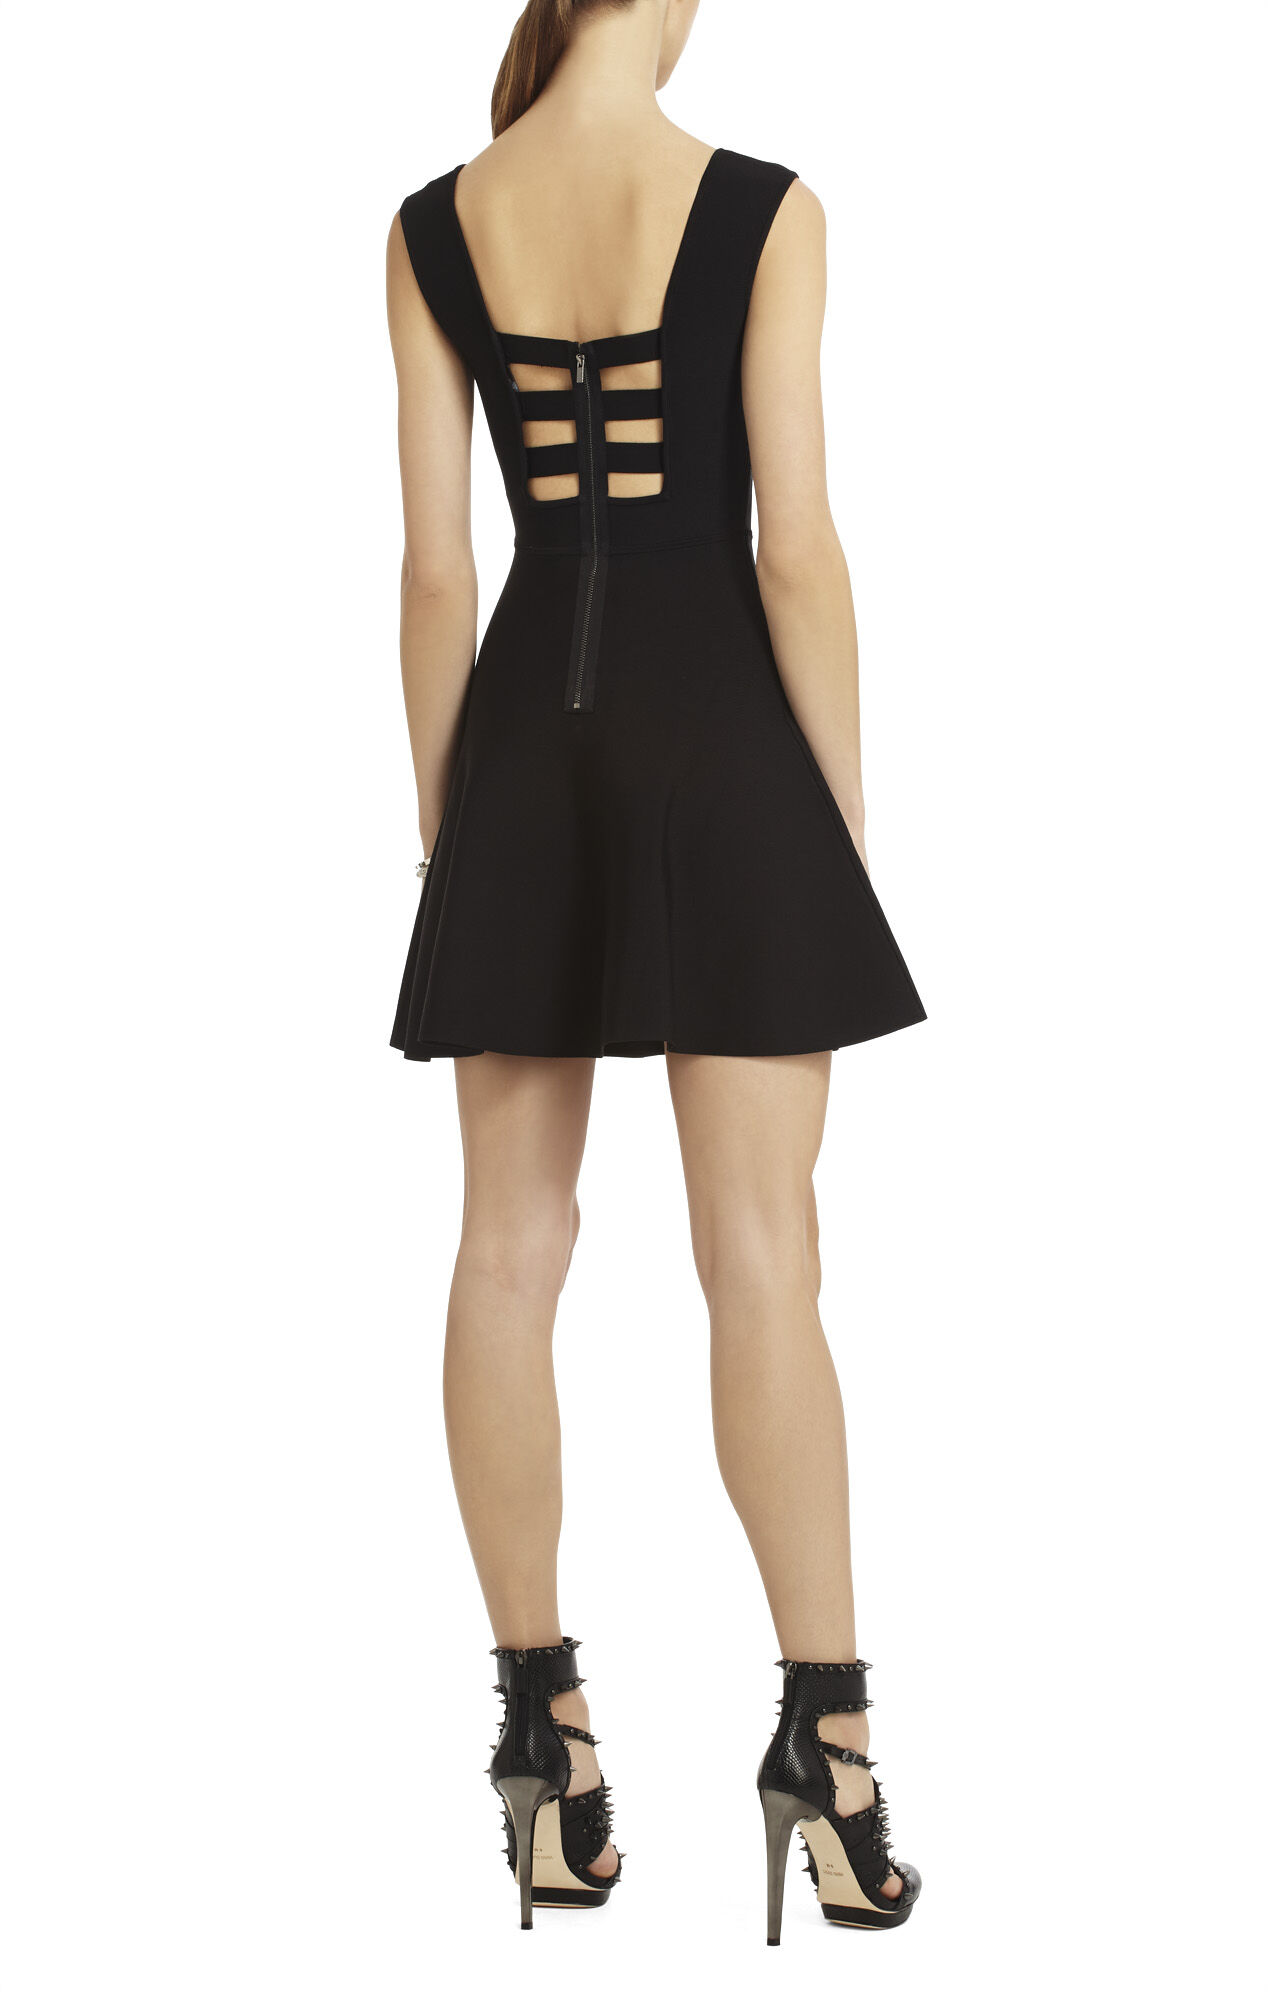 Izella Back-Strapped Dress